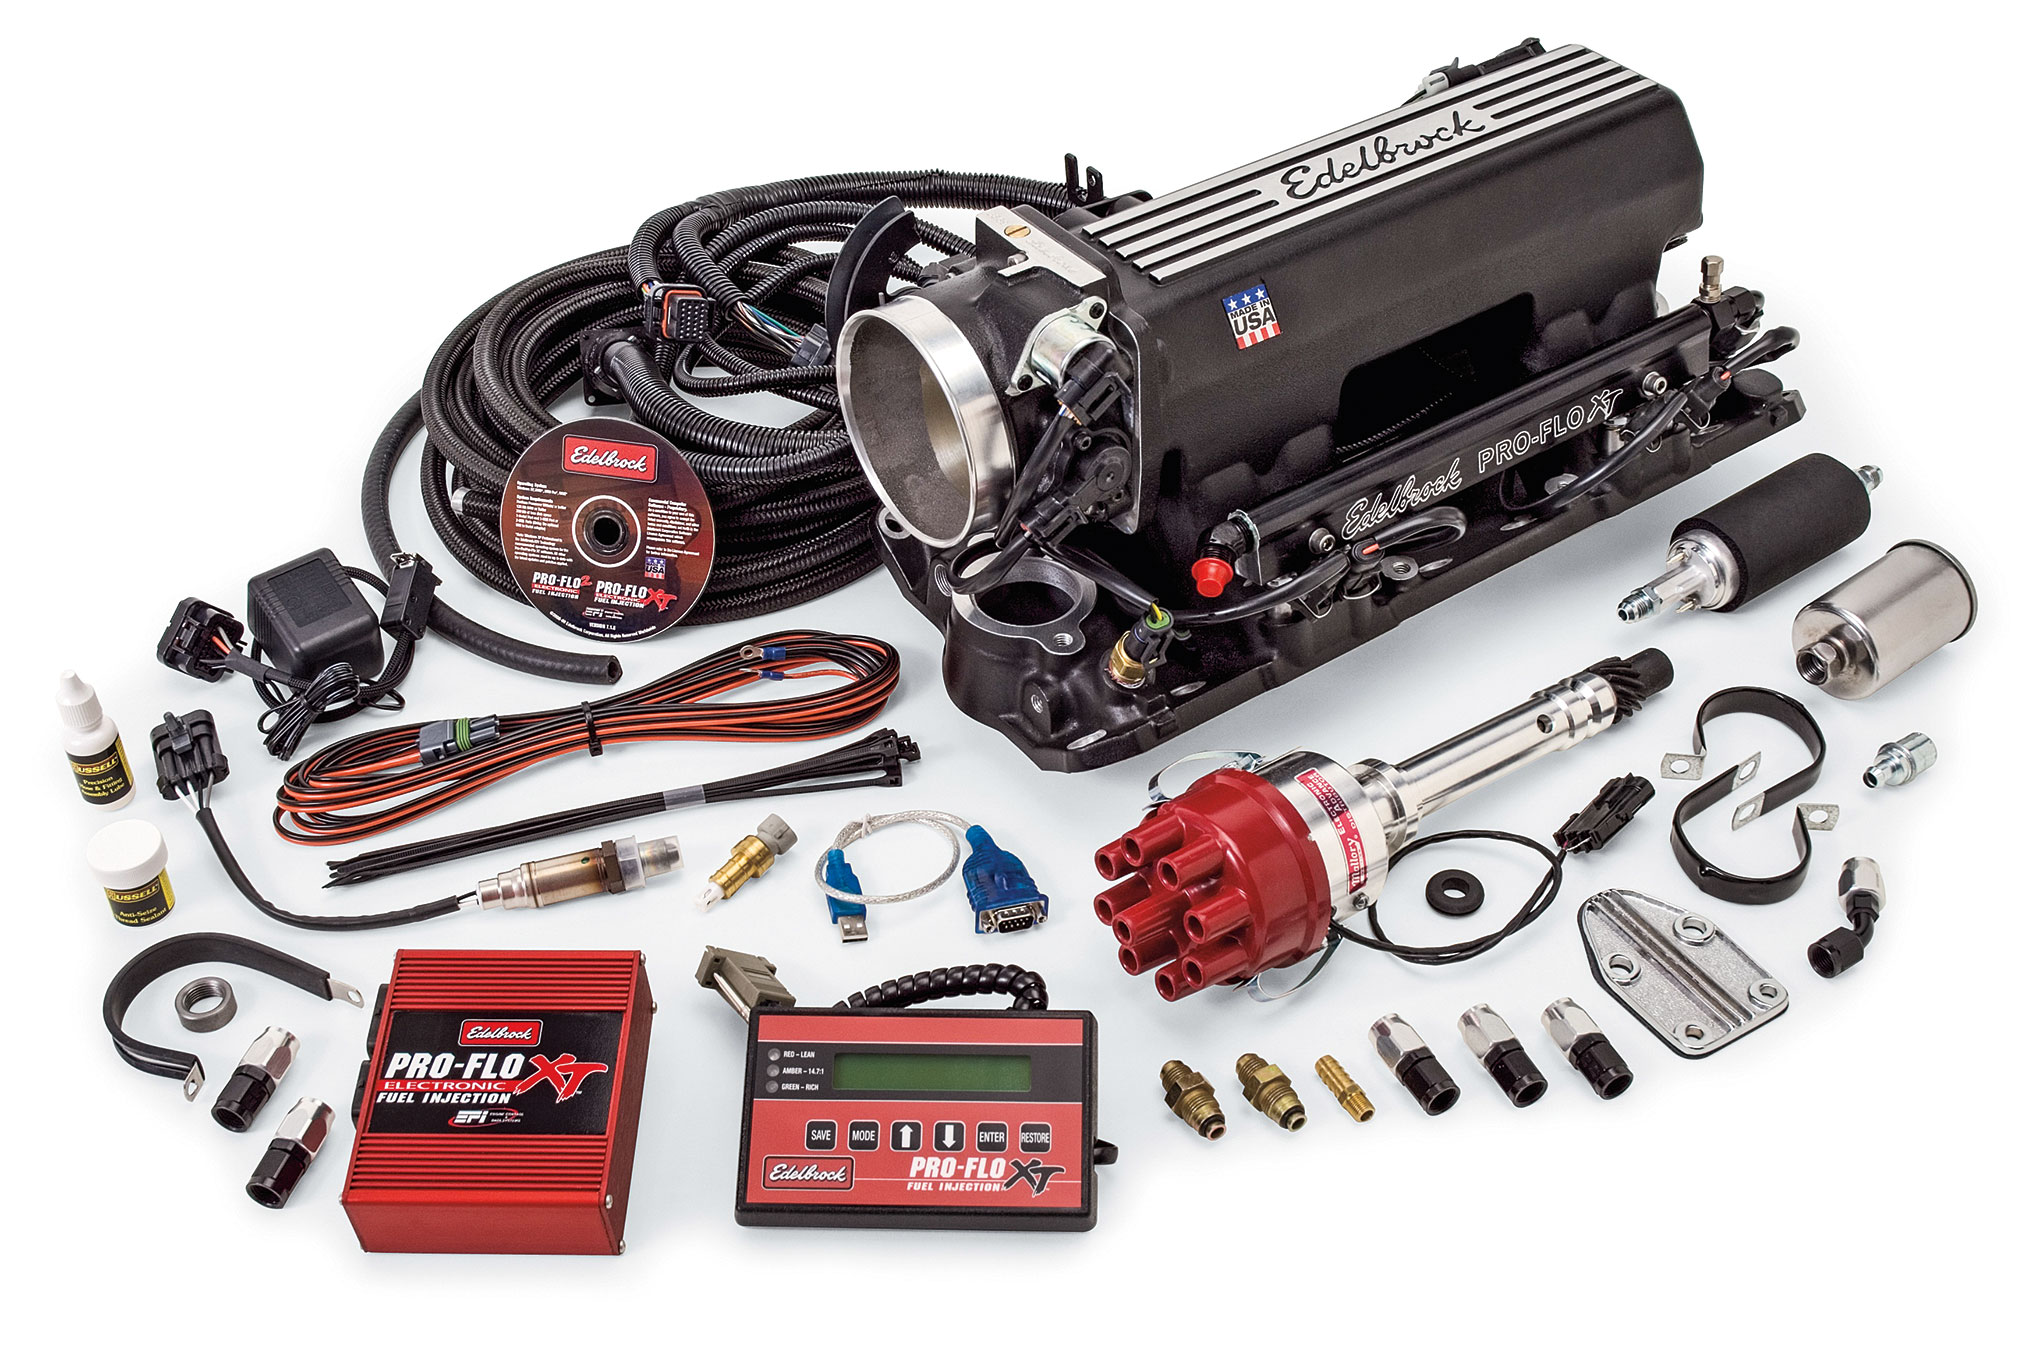 hight resolution of fuel injection kits to replace your carb carb to tbi wiring harness kit